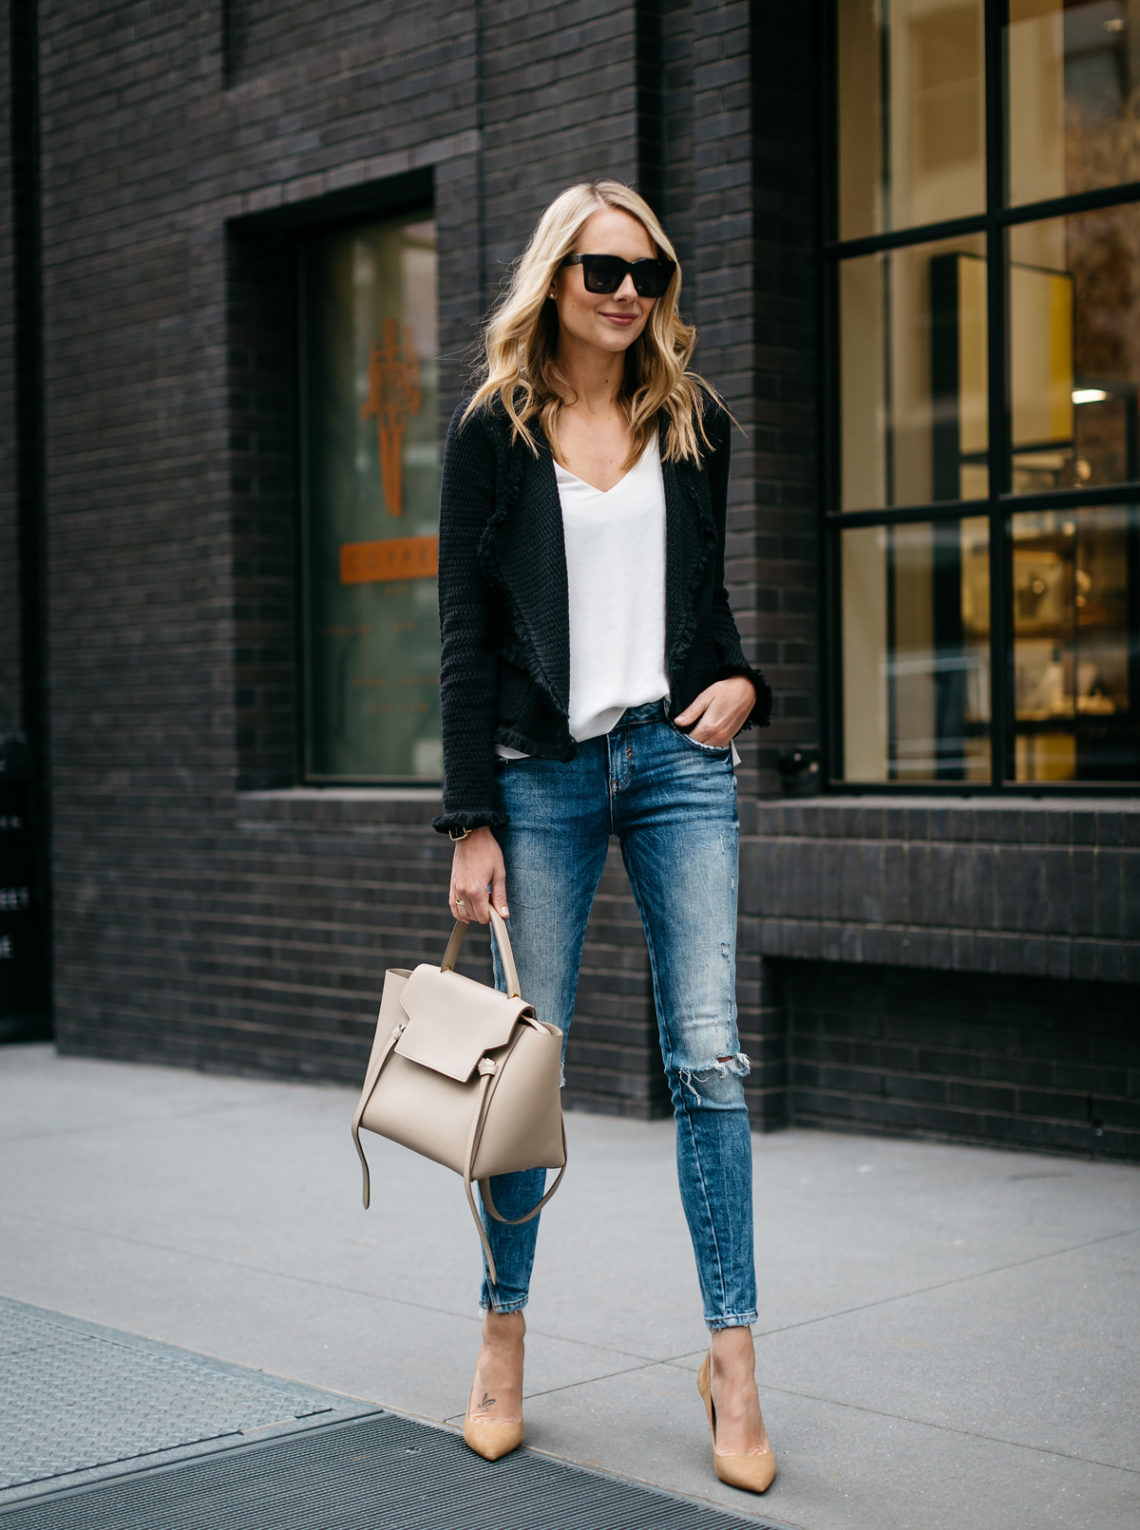 Fall Outfit, Spring Outfit, Black Fringe Cardigan, White Tank, Denim Ripped Skinny Jeans, Tan Suede Pumps, Celine Belt Bag